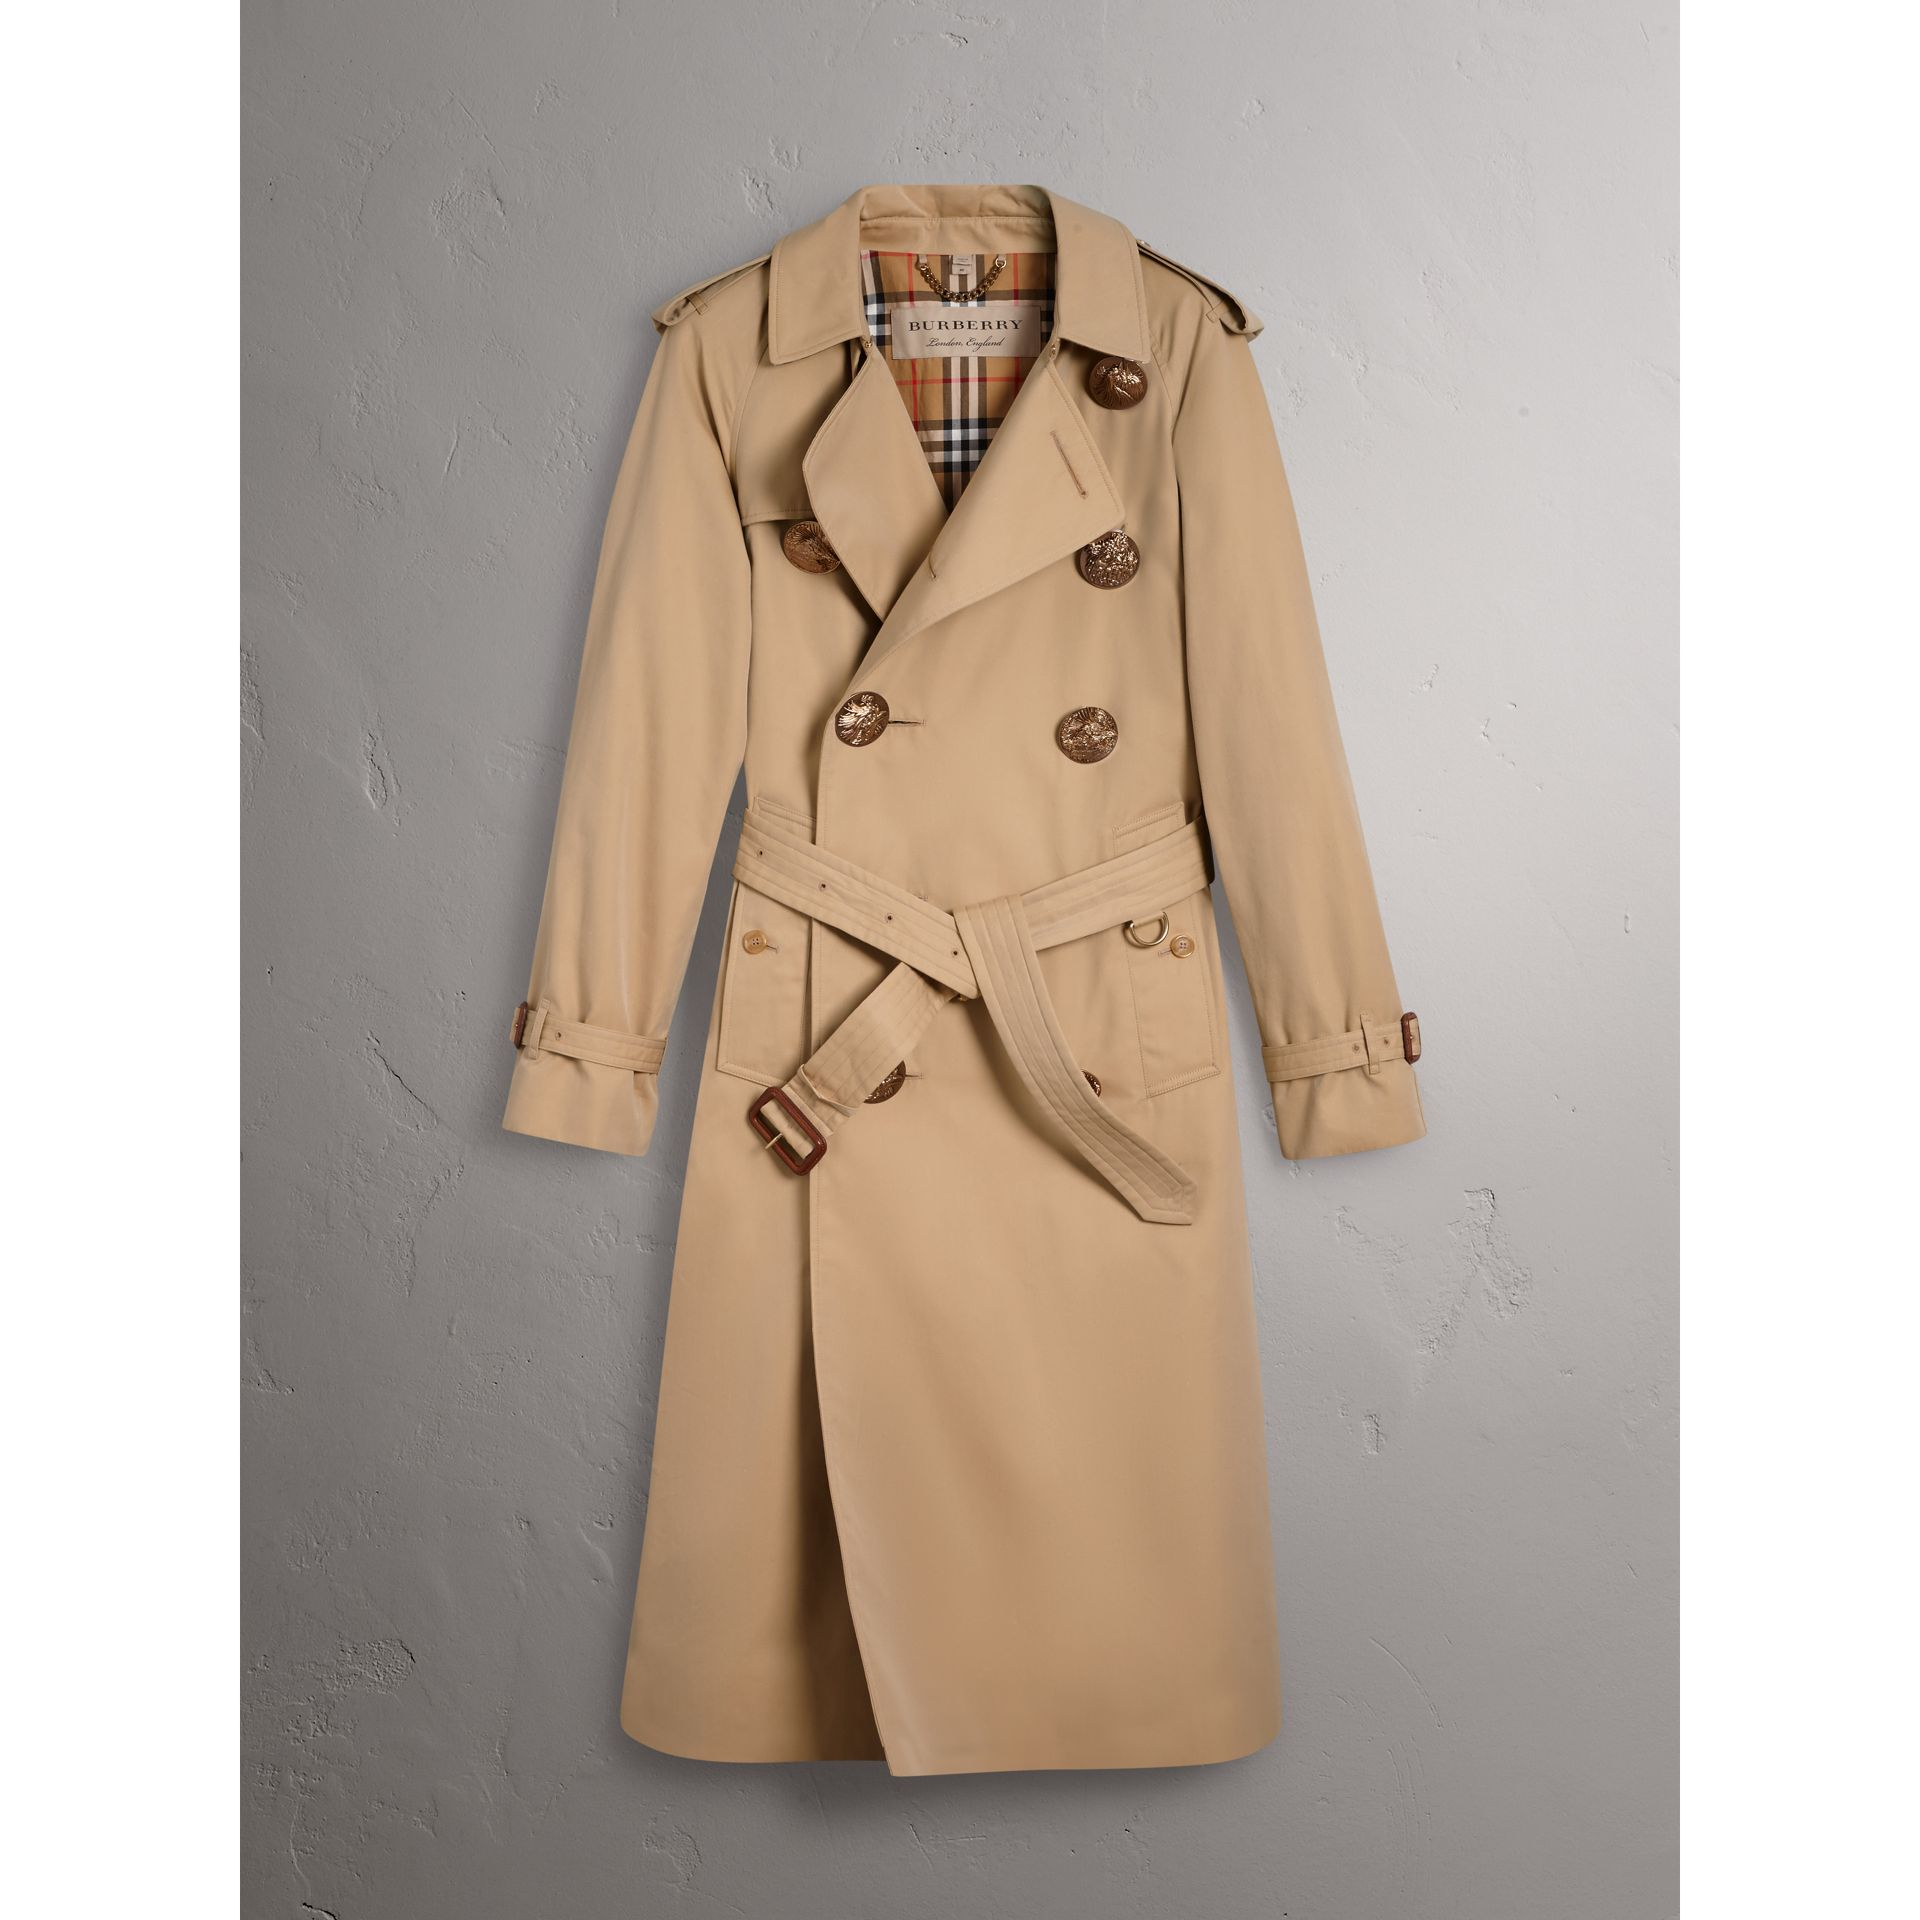 Burberry Honey Bird Button Cotton Gabardine Trench Coat